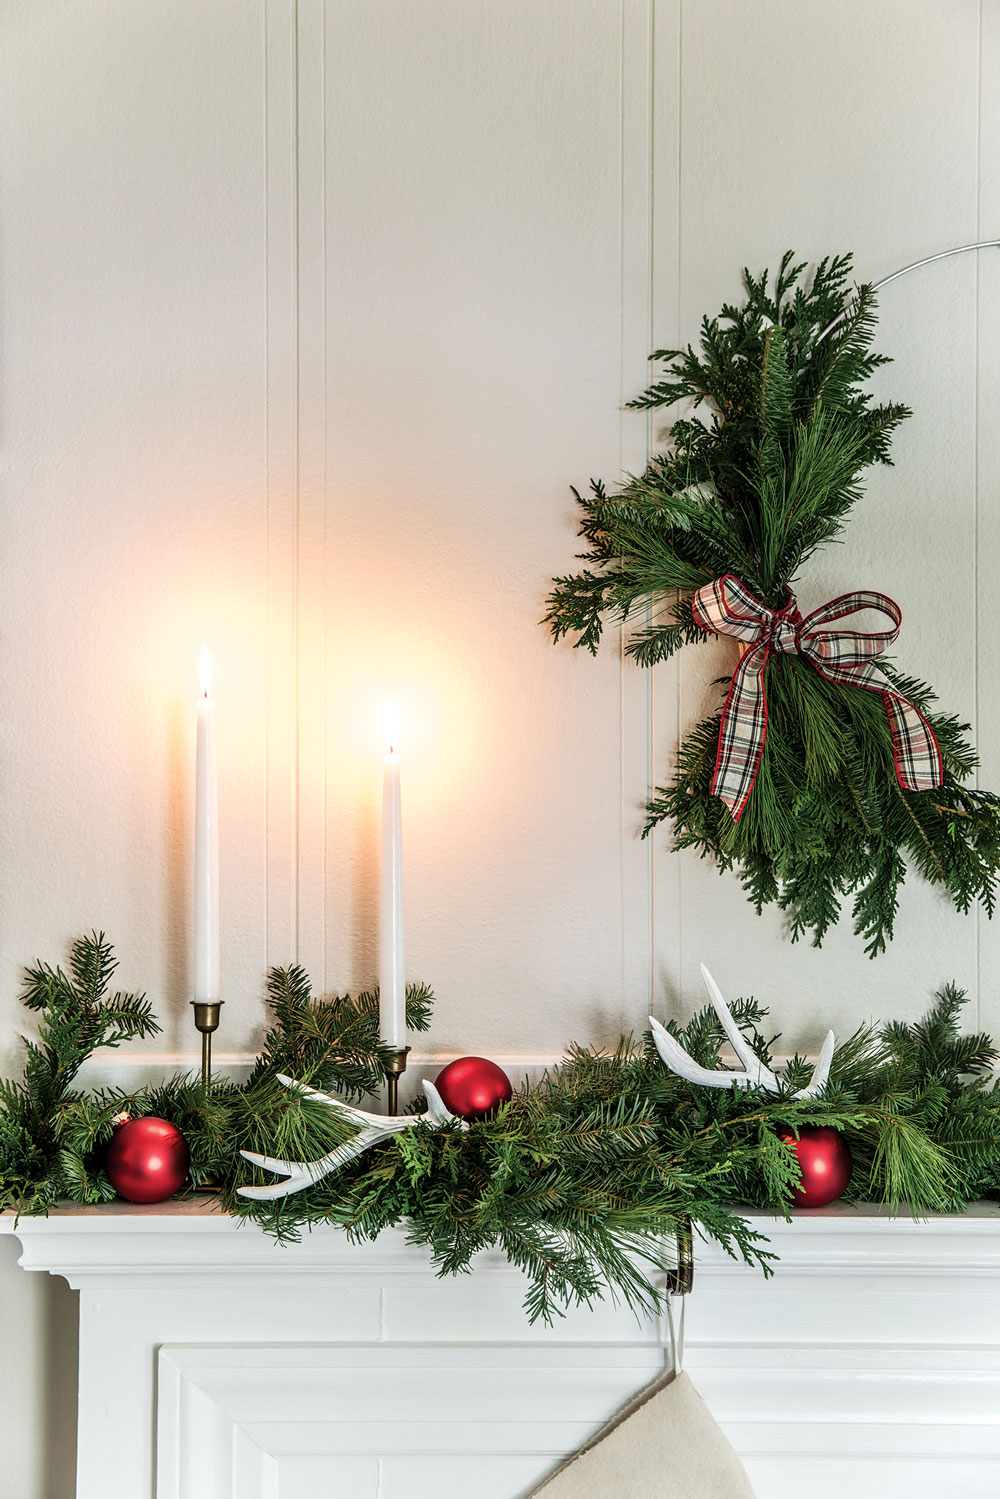 holiday décor ideas, mantel greens, antique candlesticks, and deer antlers